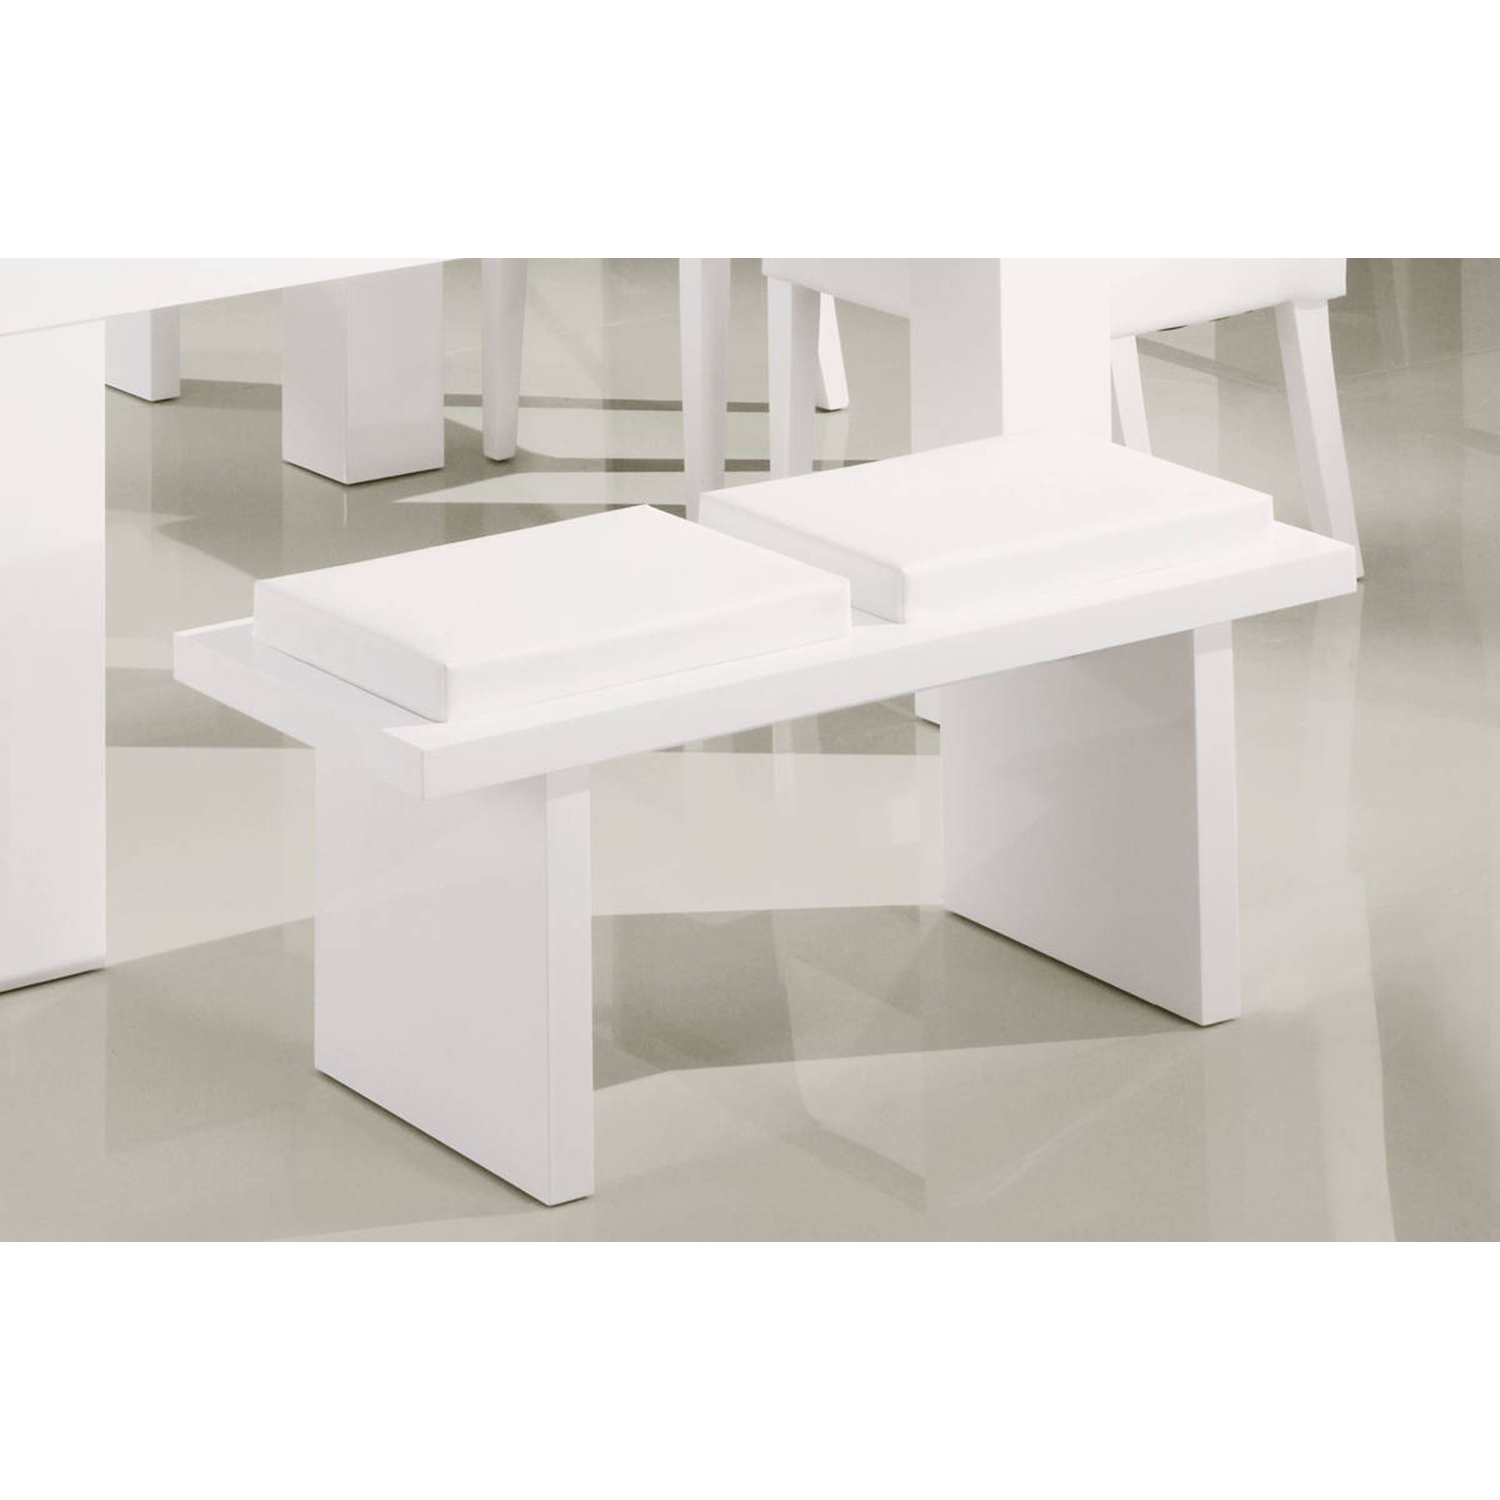 Tristan Bench, Glossy White - GLO-DG020BN-WH